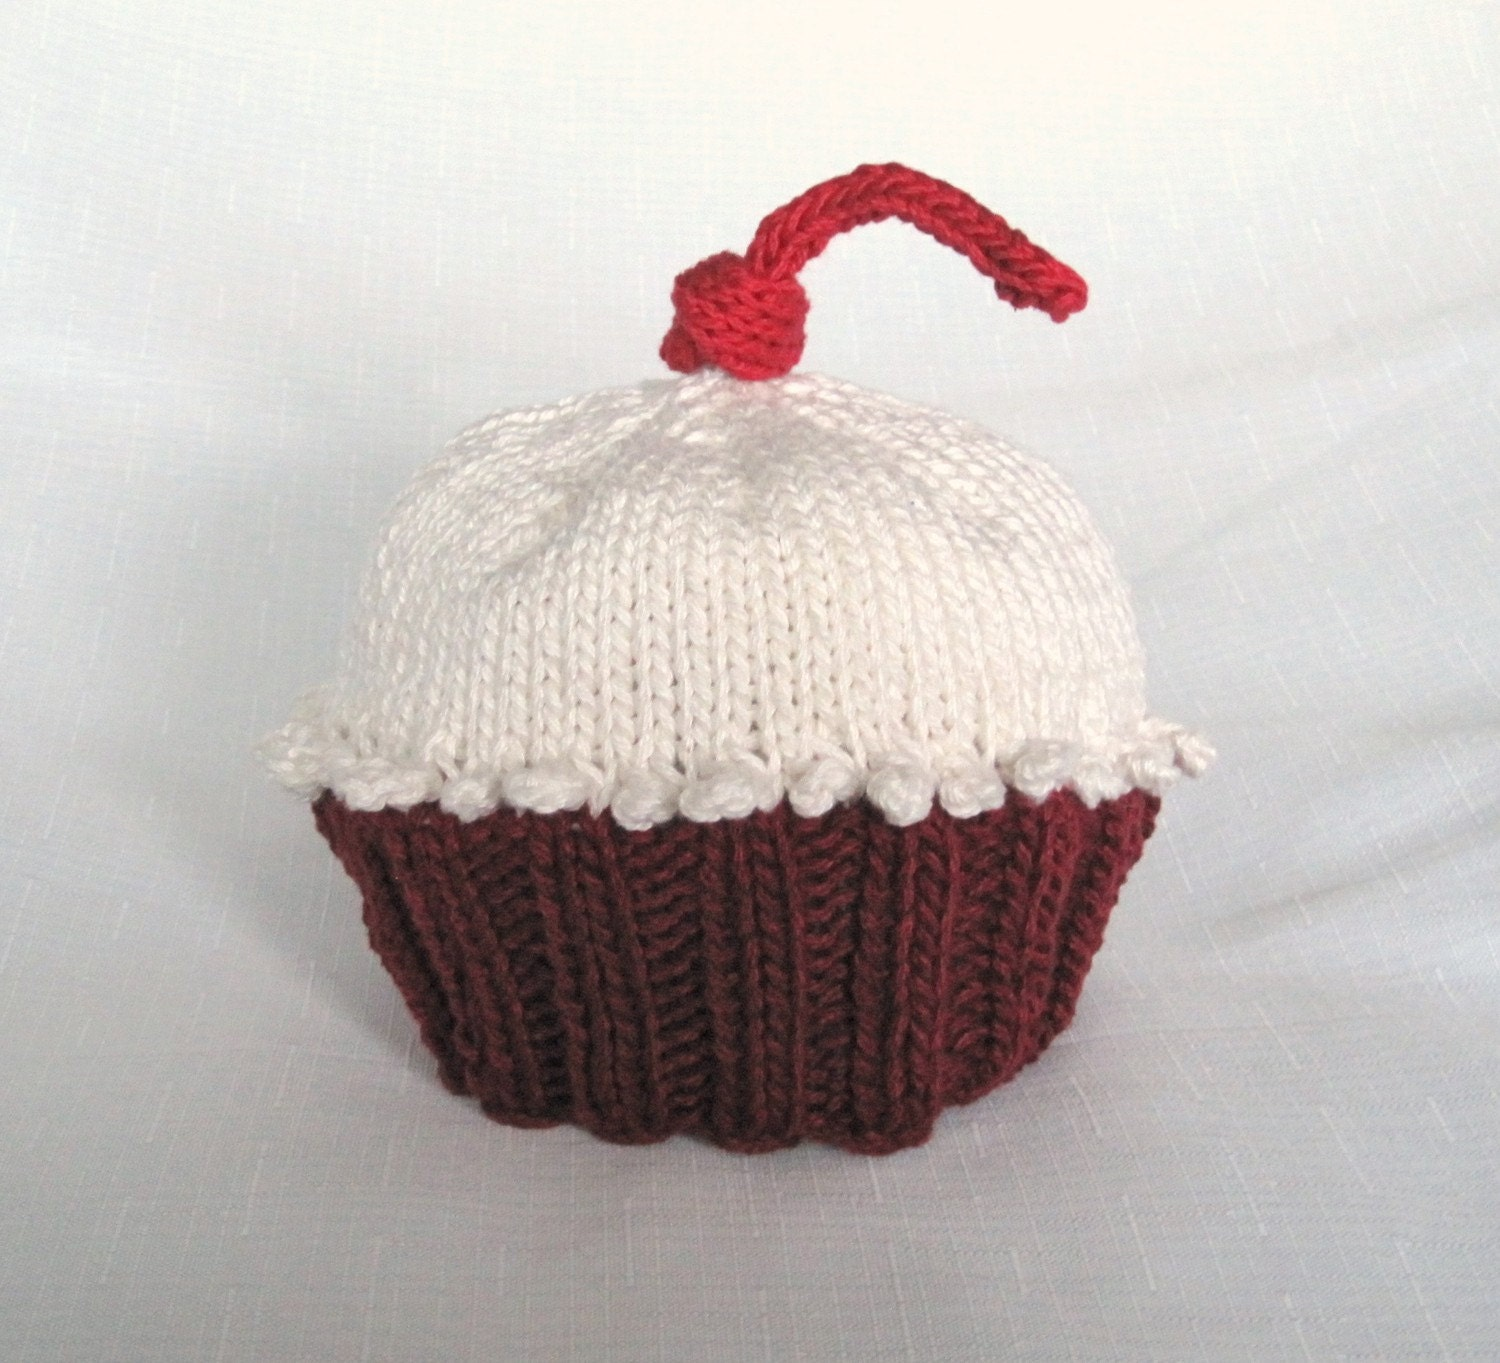 Knitting Pattern For Baby Cupcake Hat : Boston Beanies Cupcake Hat Red Velvet Knit Cotton by ...